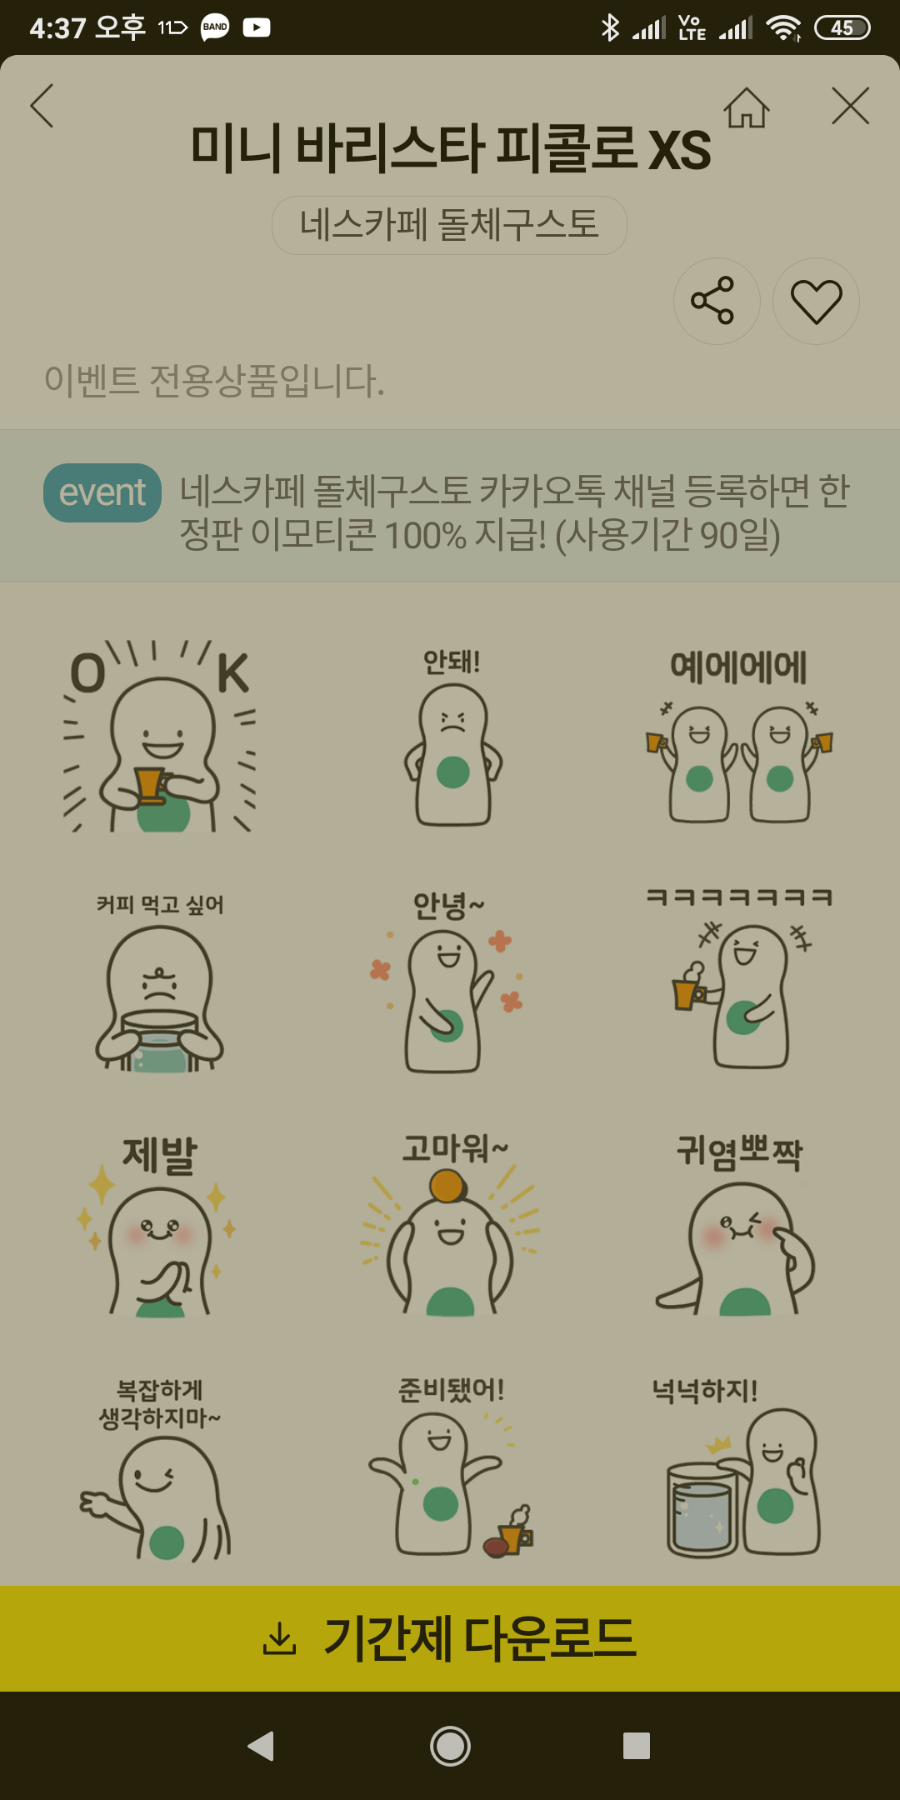 Screenshot_2019-10-07-16-37-06-319_com.kakao.talk.png